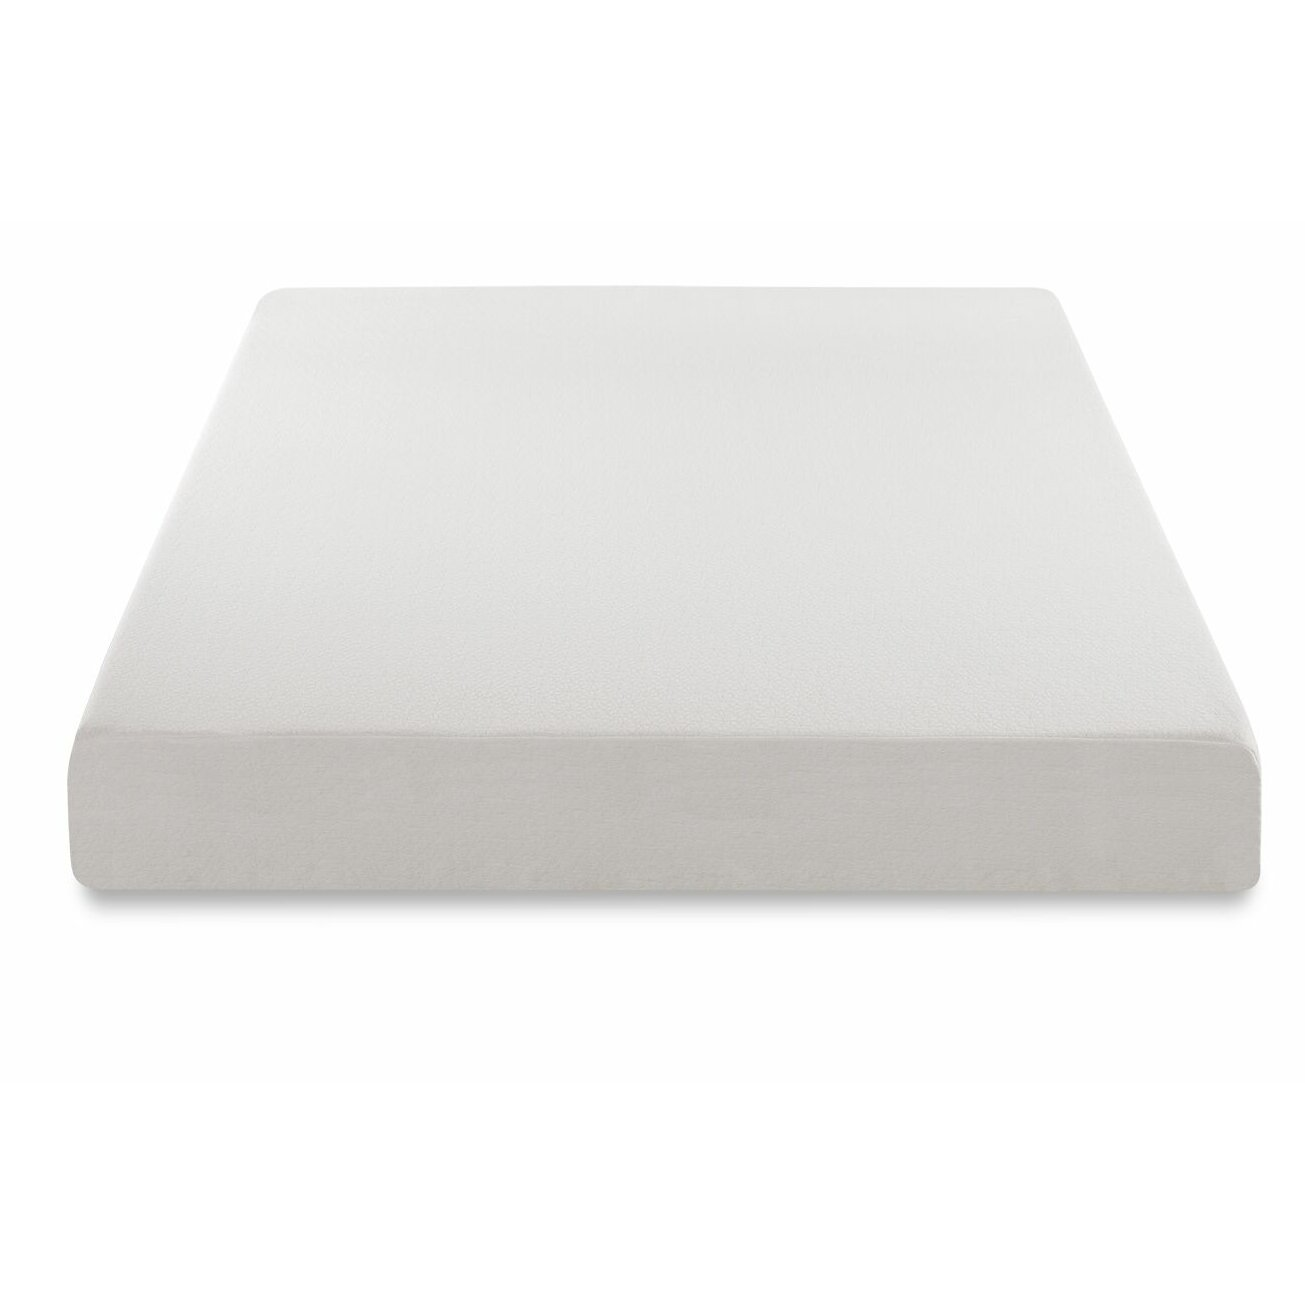 """OrthoTherapy Select 10"""" Memory Foam Mattress & Reviews"""